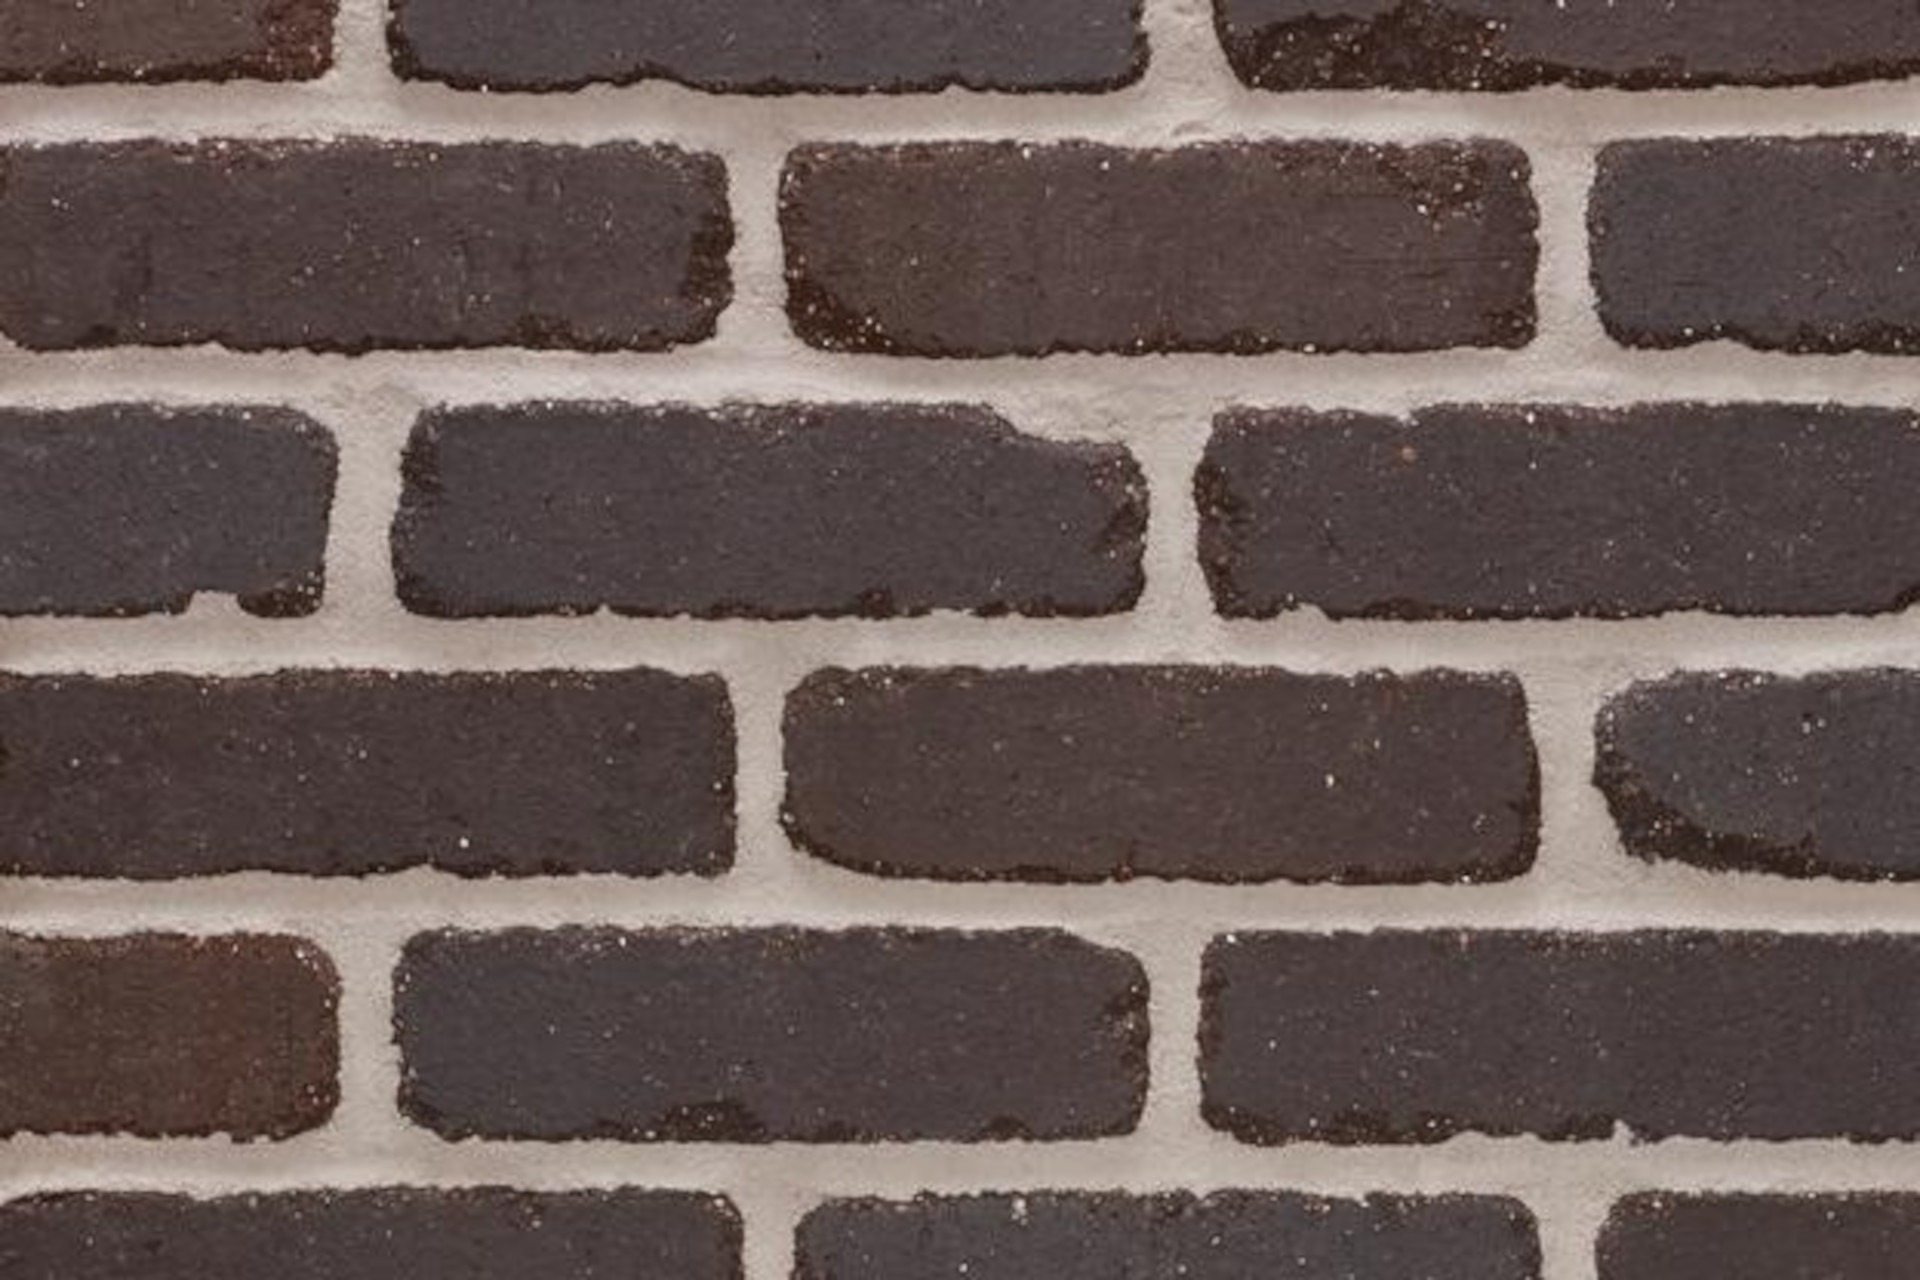 Blacksmith Thin Brick